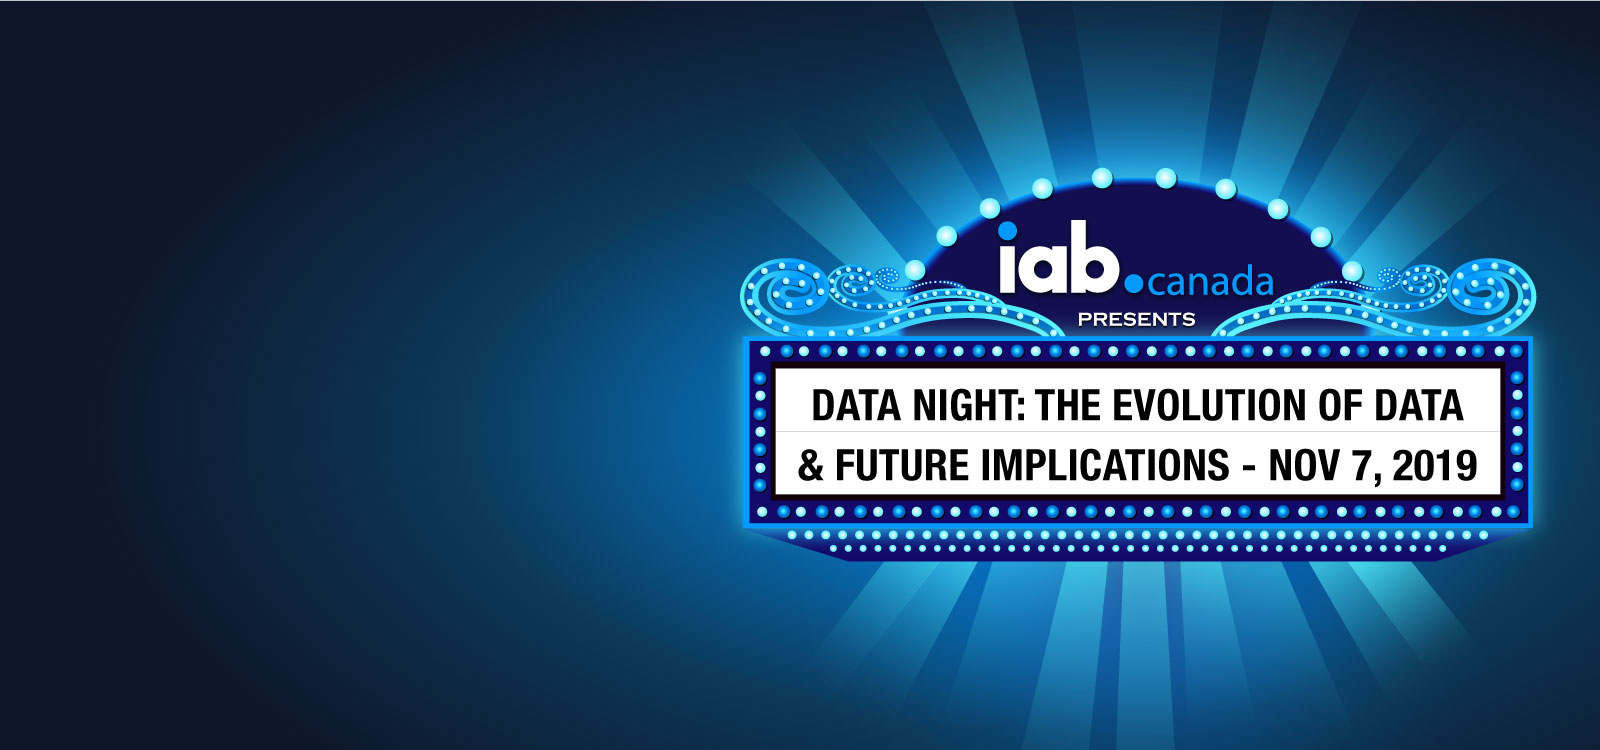 Data Night: The Evolution of Data & Future Implications - Nov 7